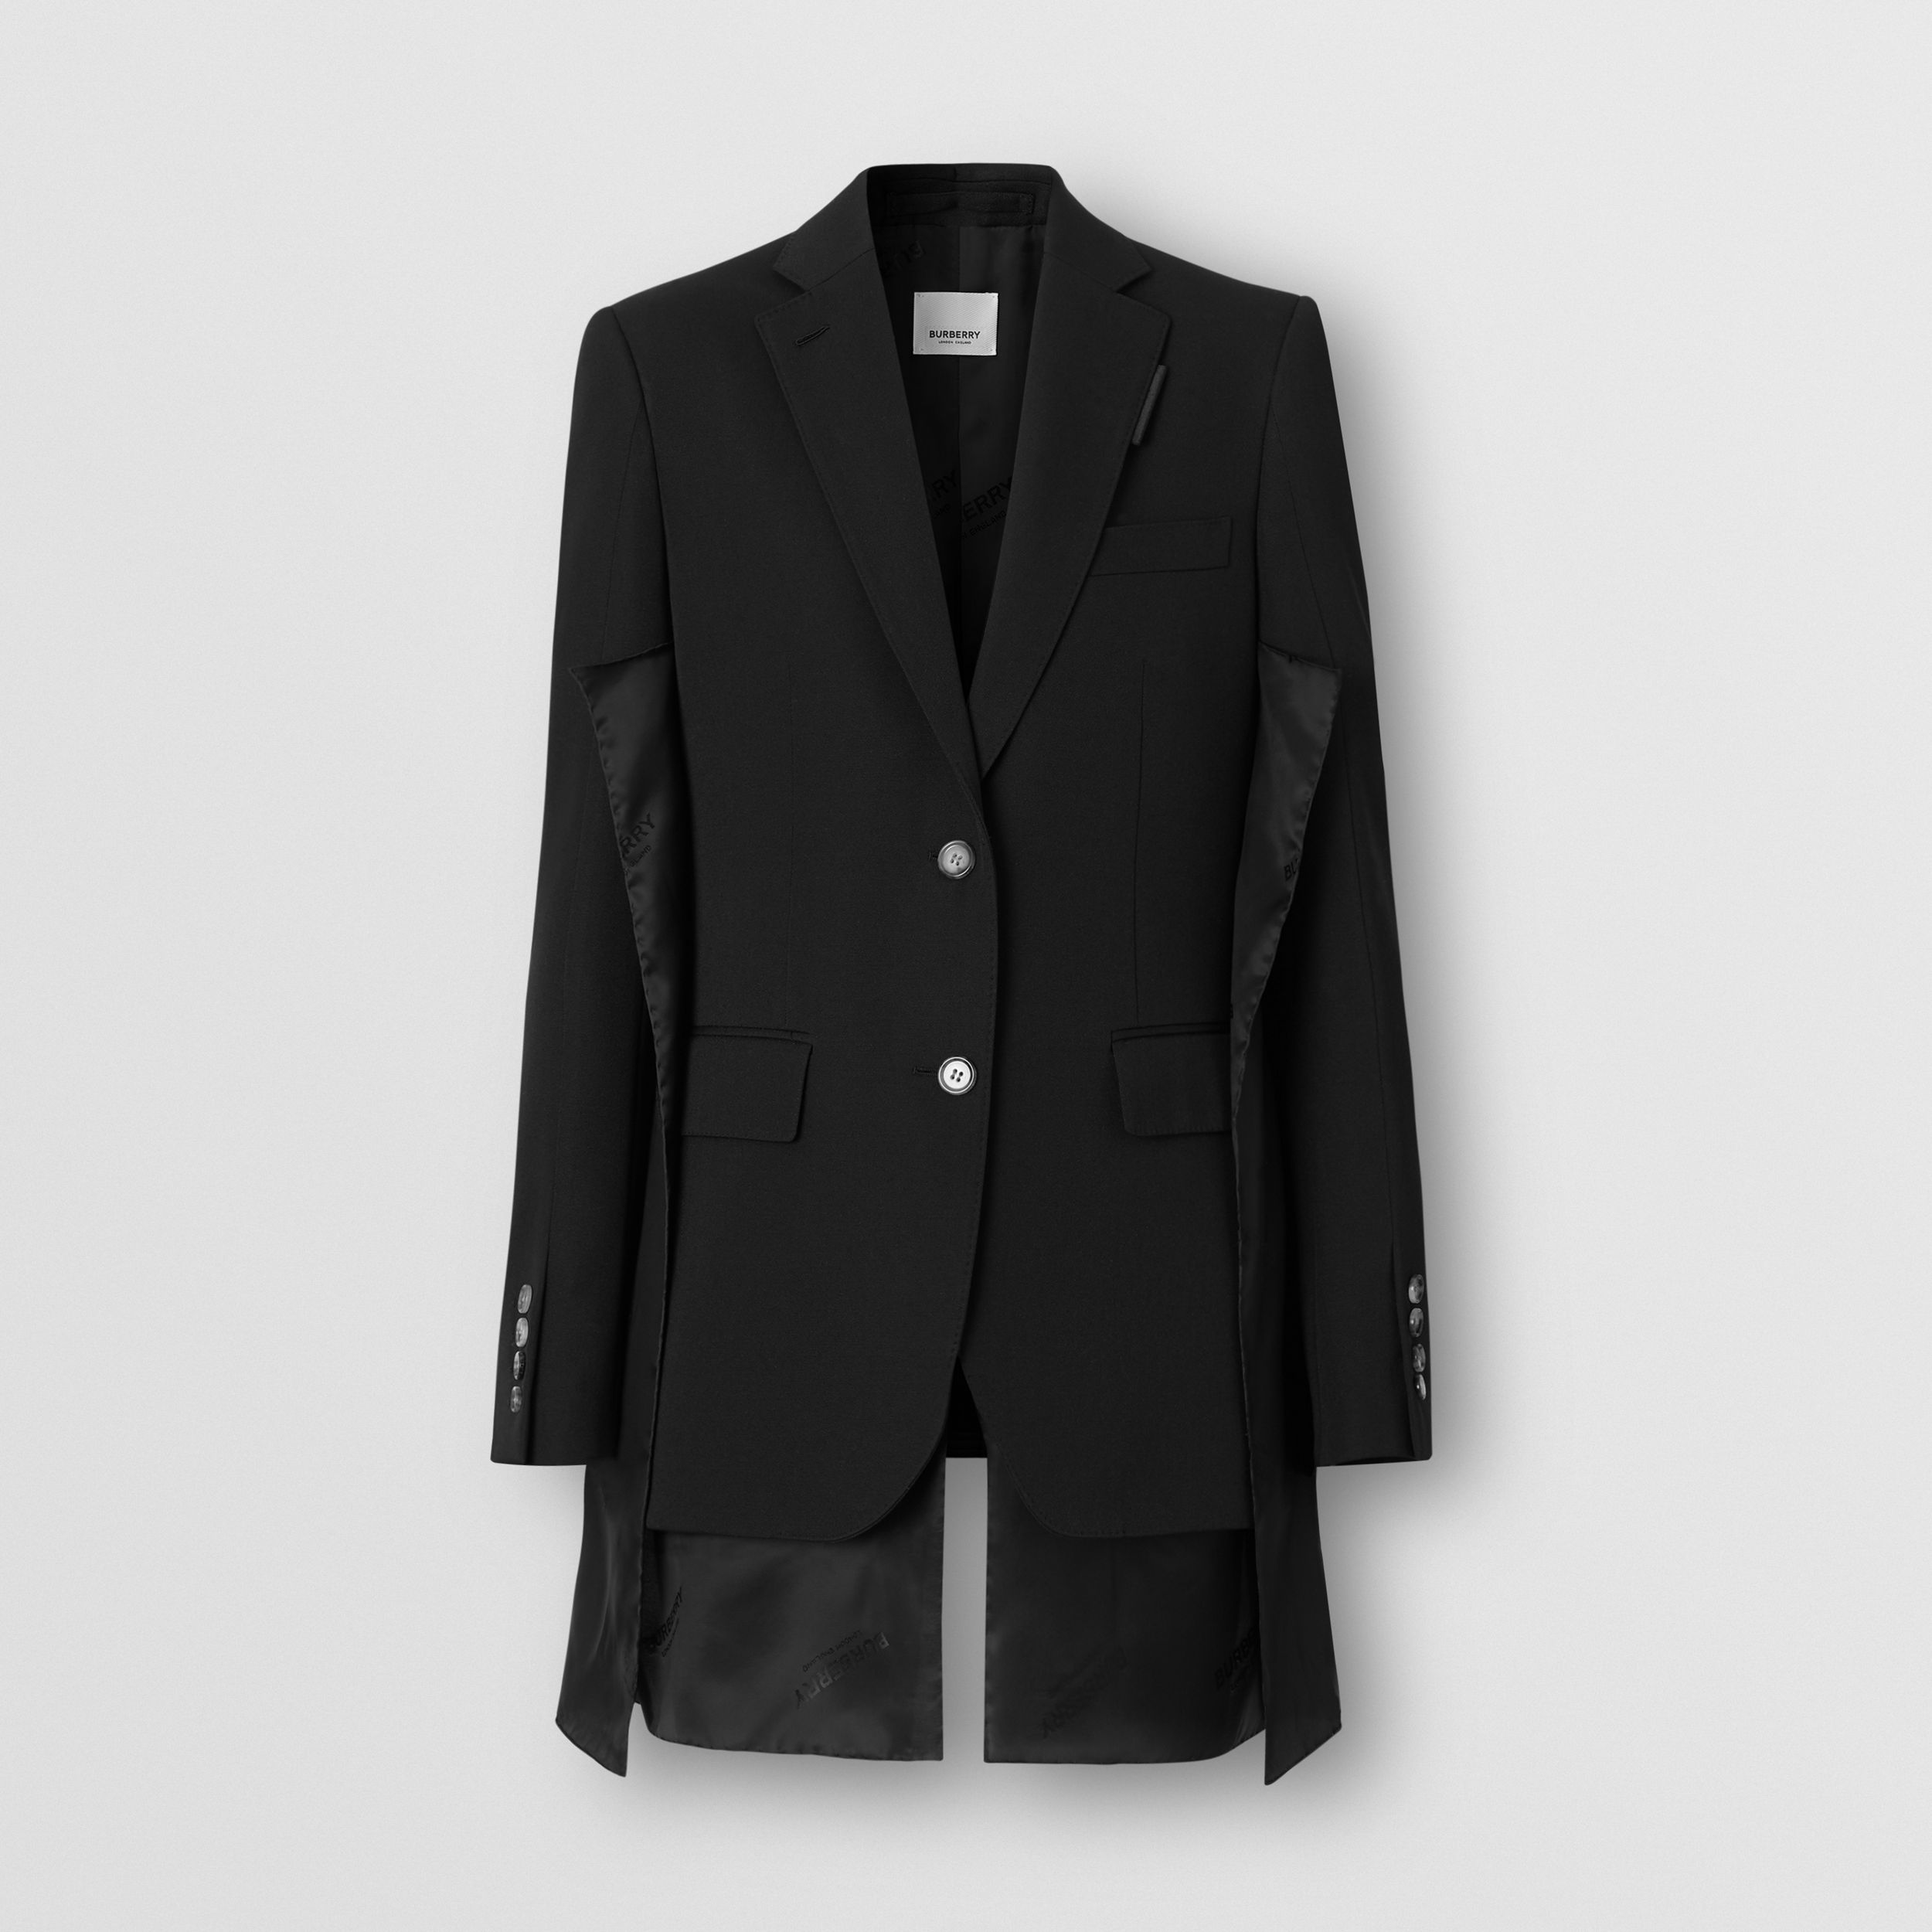 Logo Panel Detail Wool Tailored Jacket in Black - Women | Burberry - 4